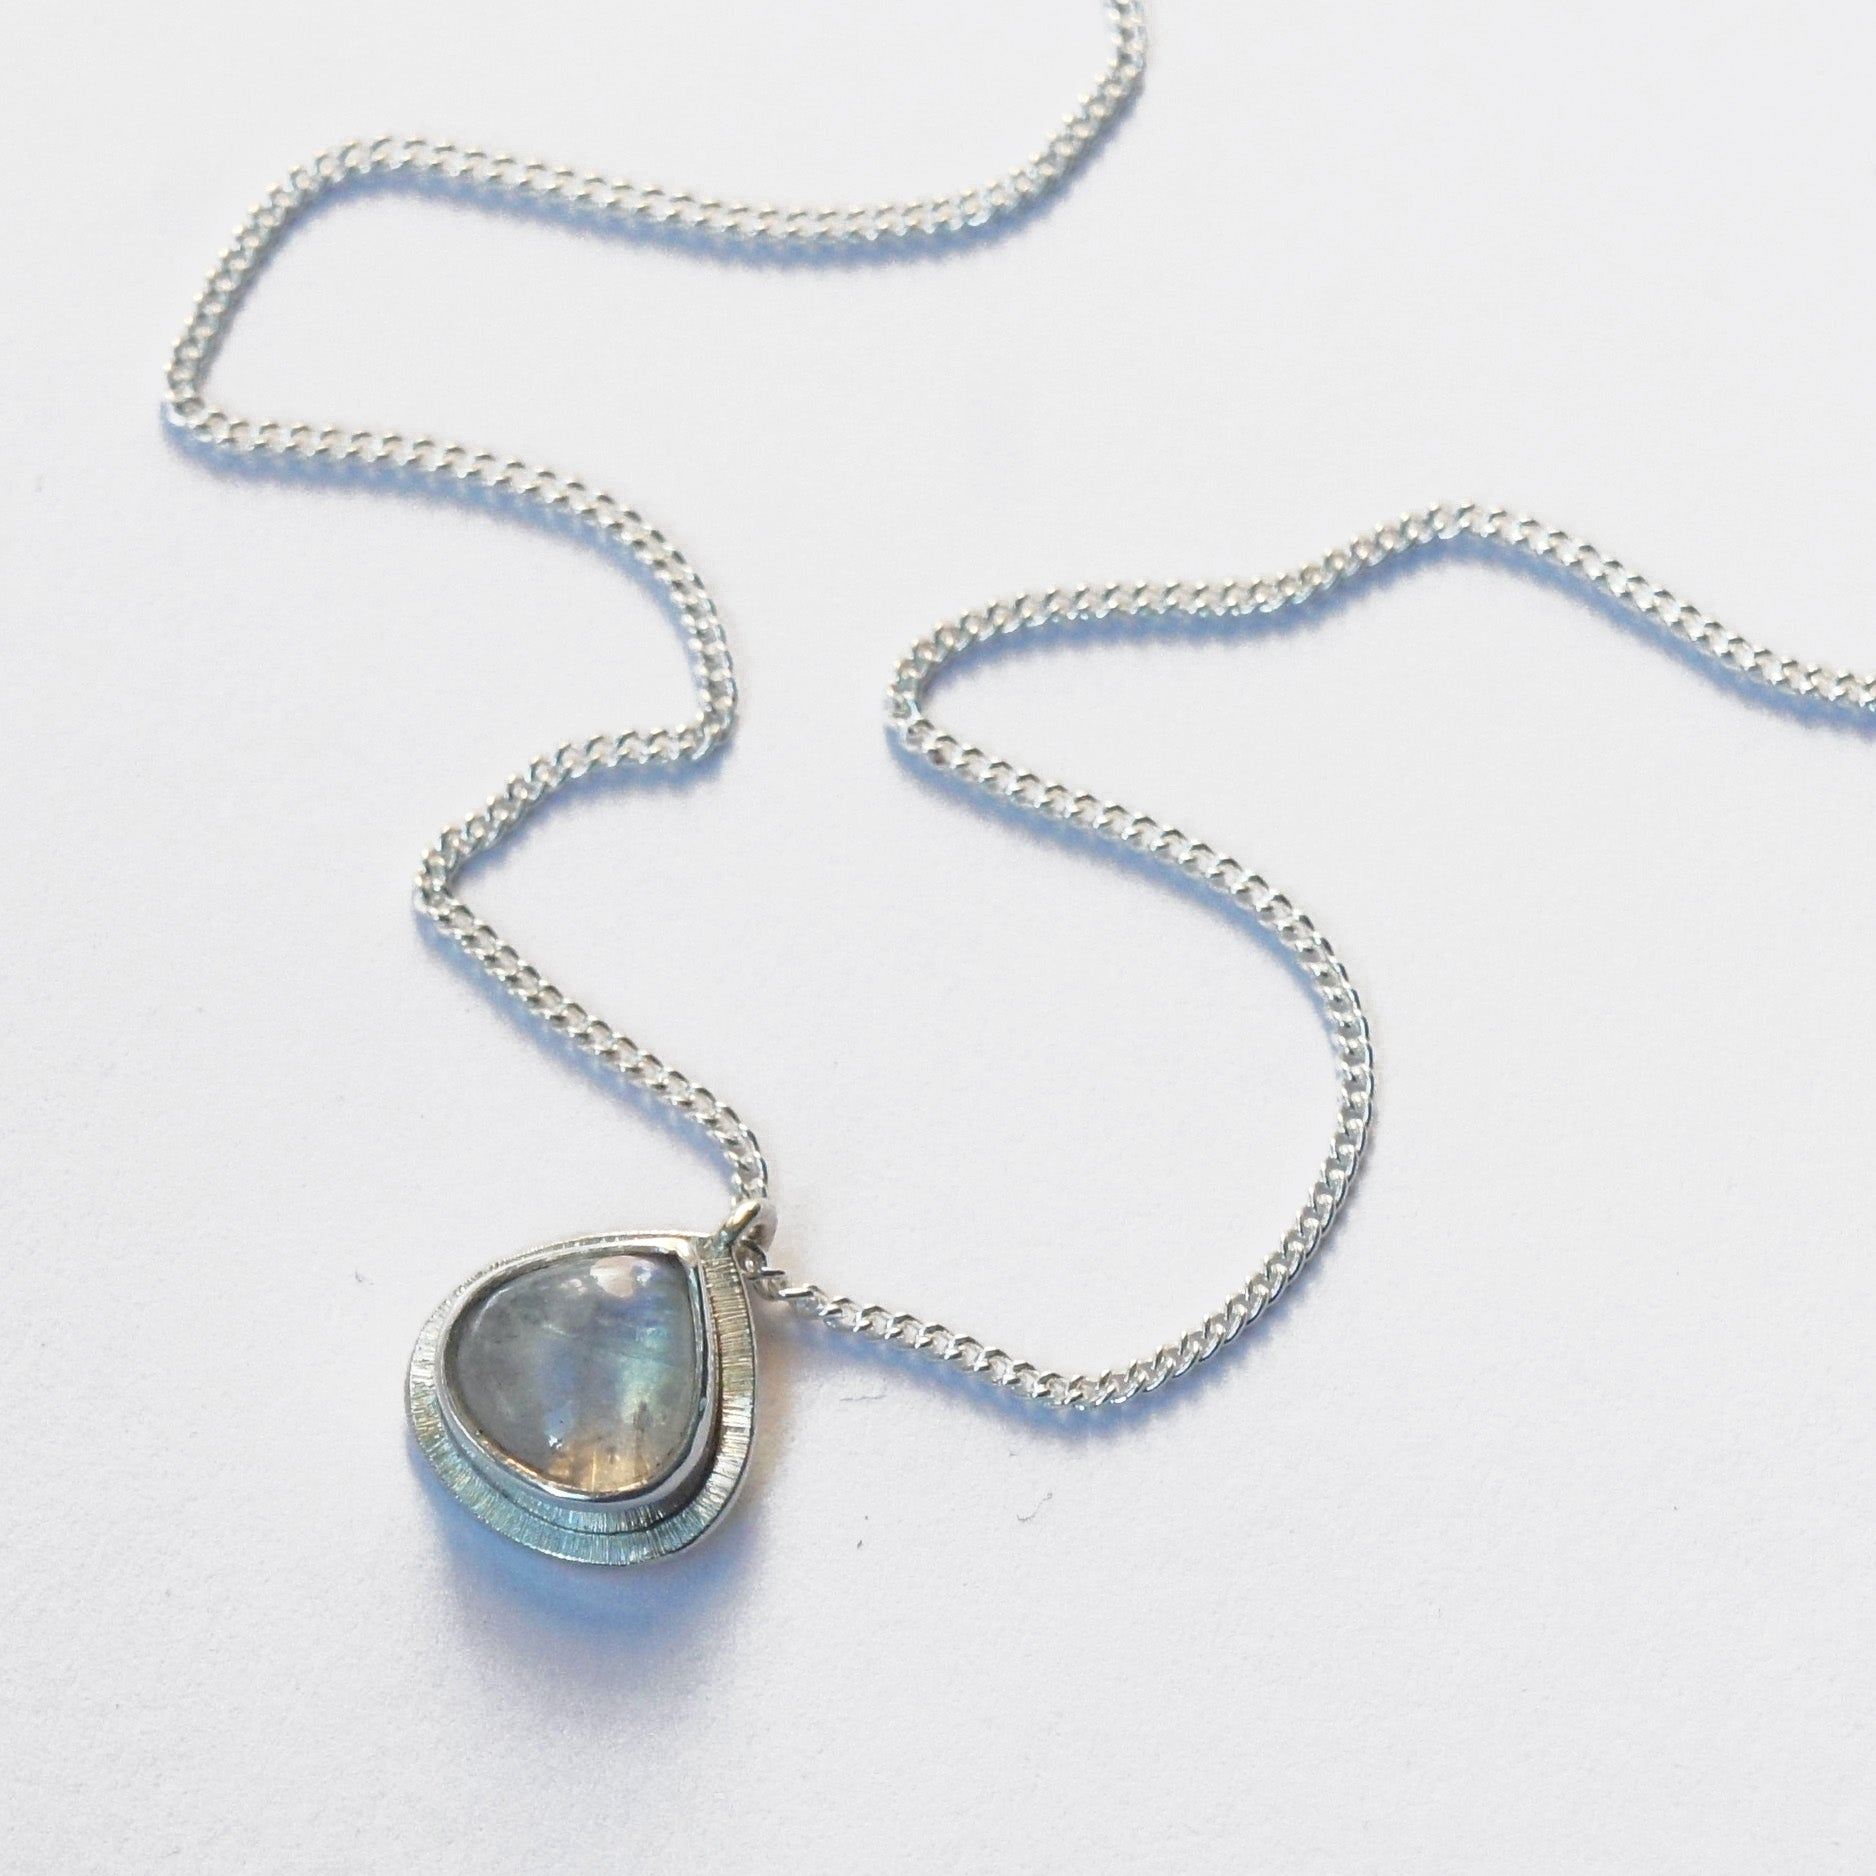 Emily Eliza Arlotte Handcrafted Fine Jewellery - Sterling Silver Handmade Moonstone Gemstone Pendant Necklace Boho Bohemian Witchy Dainty Contemporary Style Fashion